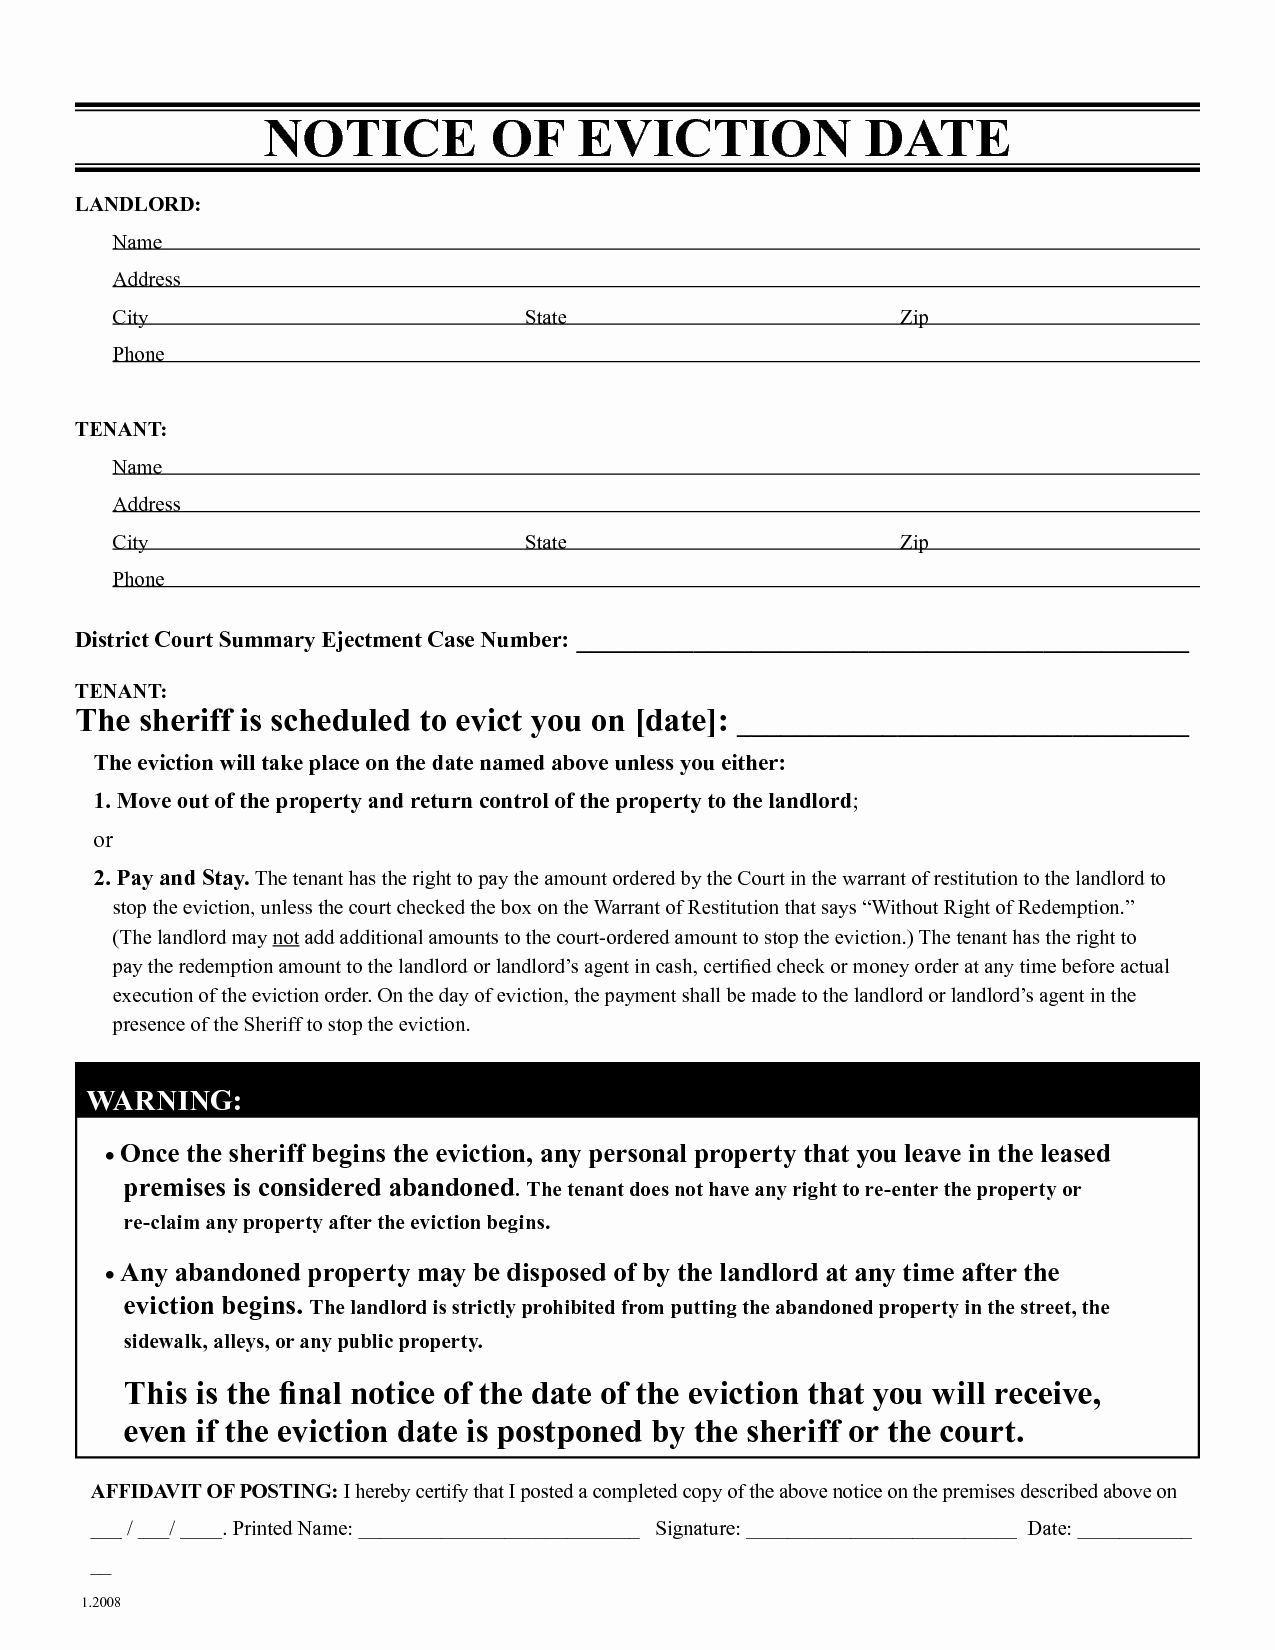 Landlord Eviction Letter Template - 30 Day Notice to Landlord Template Fresh 3 Day Eviction Notice